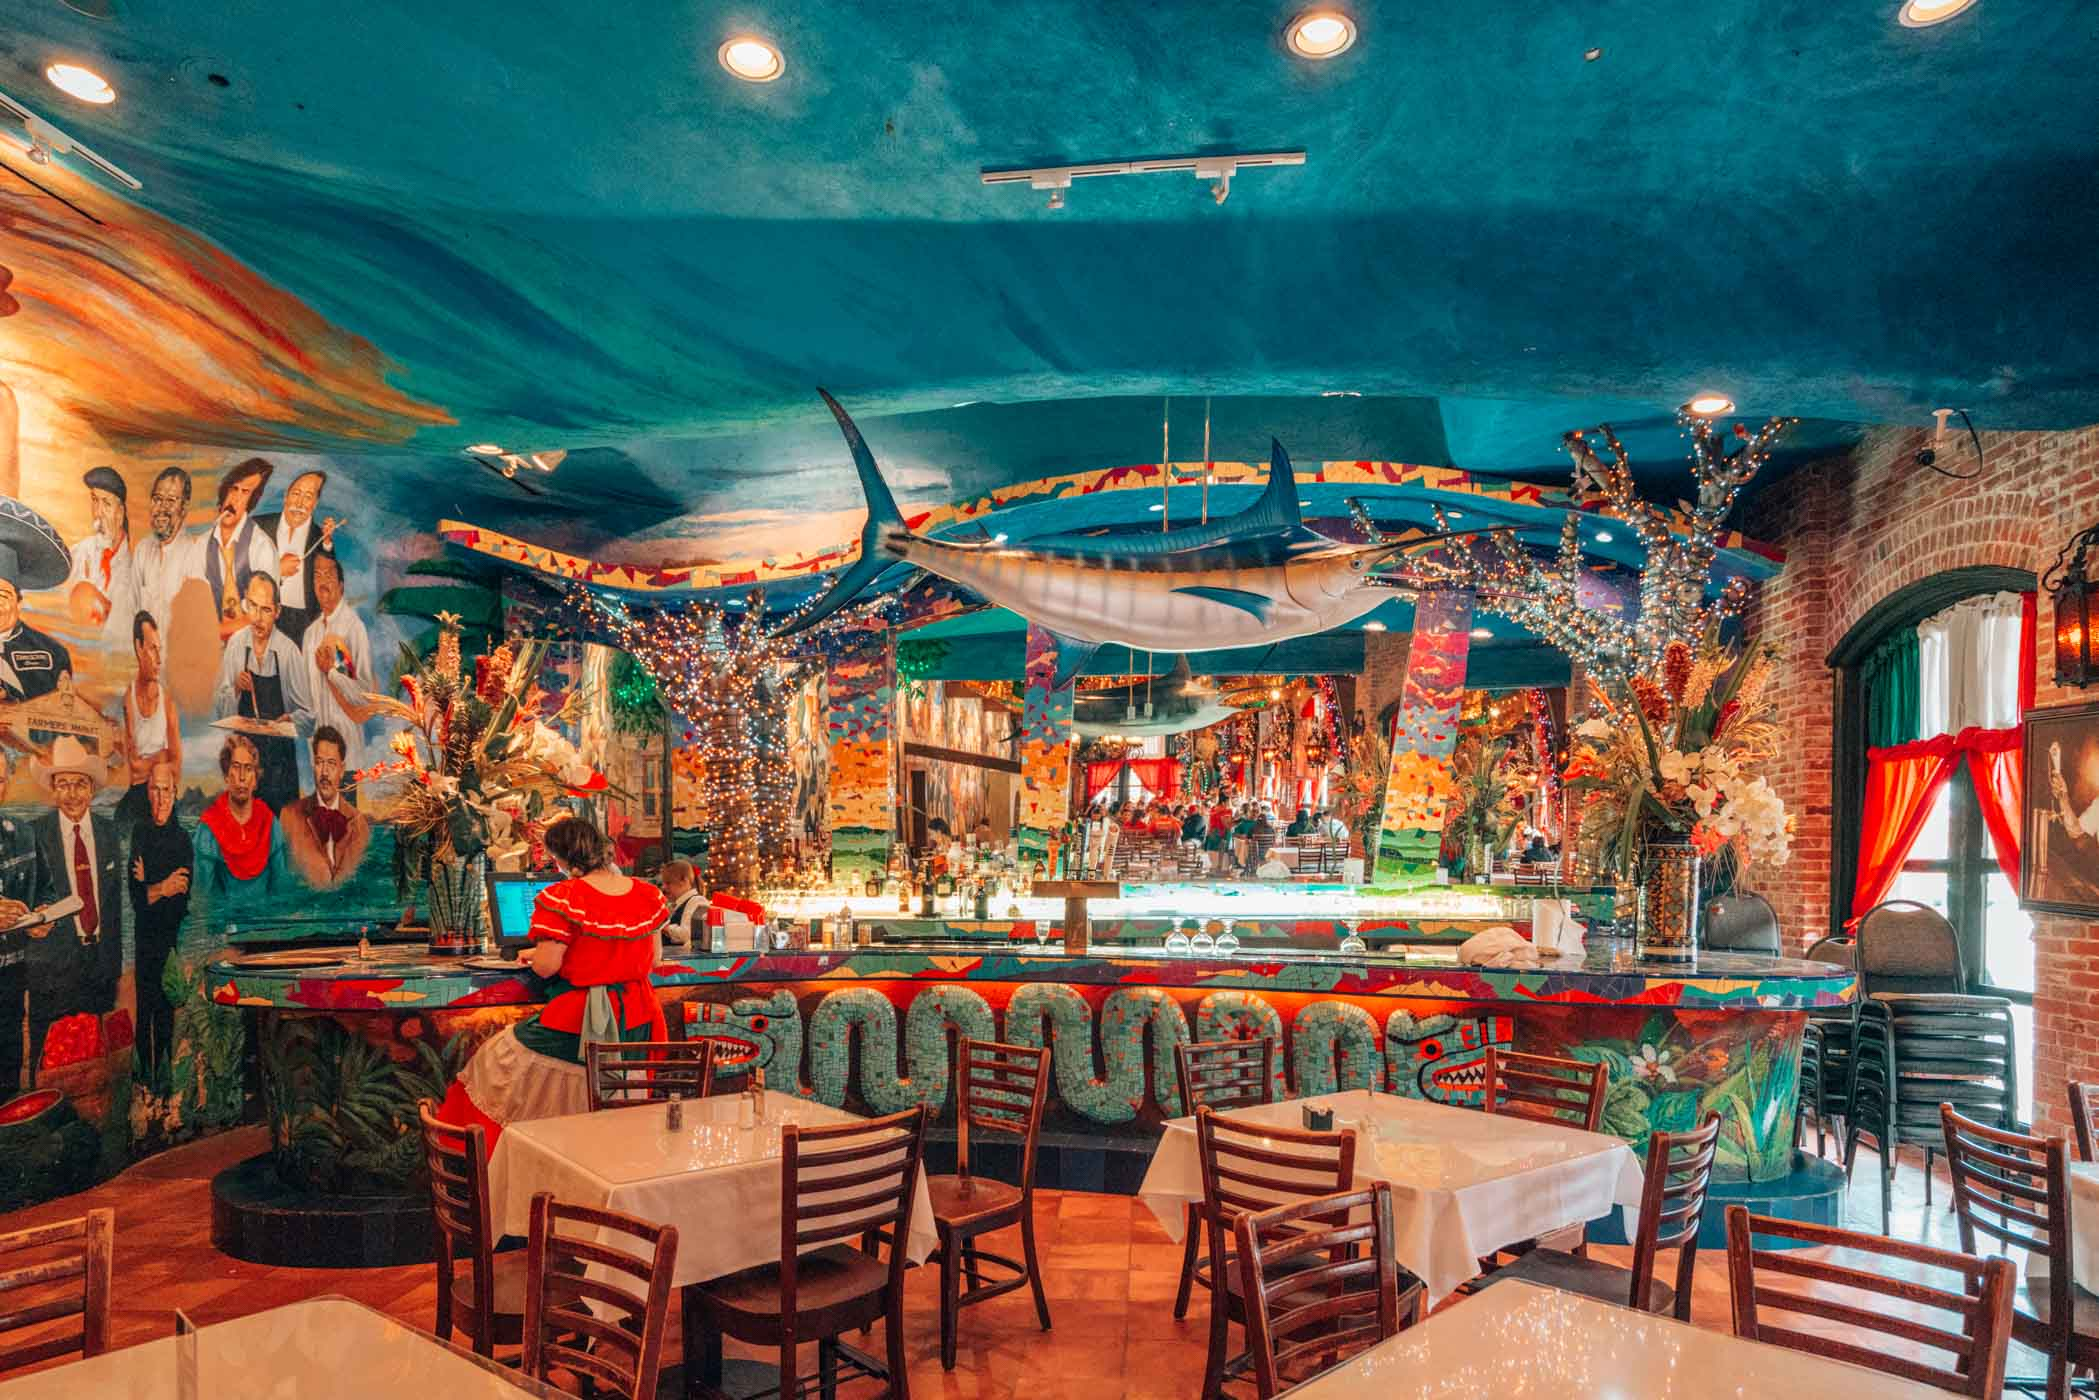 Find the best places to eat in San Antonio Texas- including the famous  Mi Tierra Café y Panaderia #Texas #visitTexas #USA